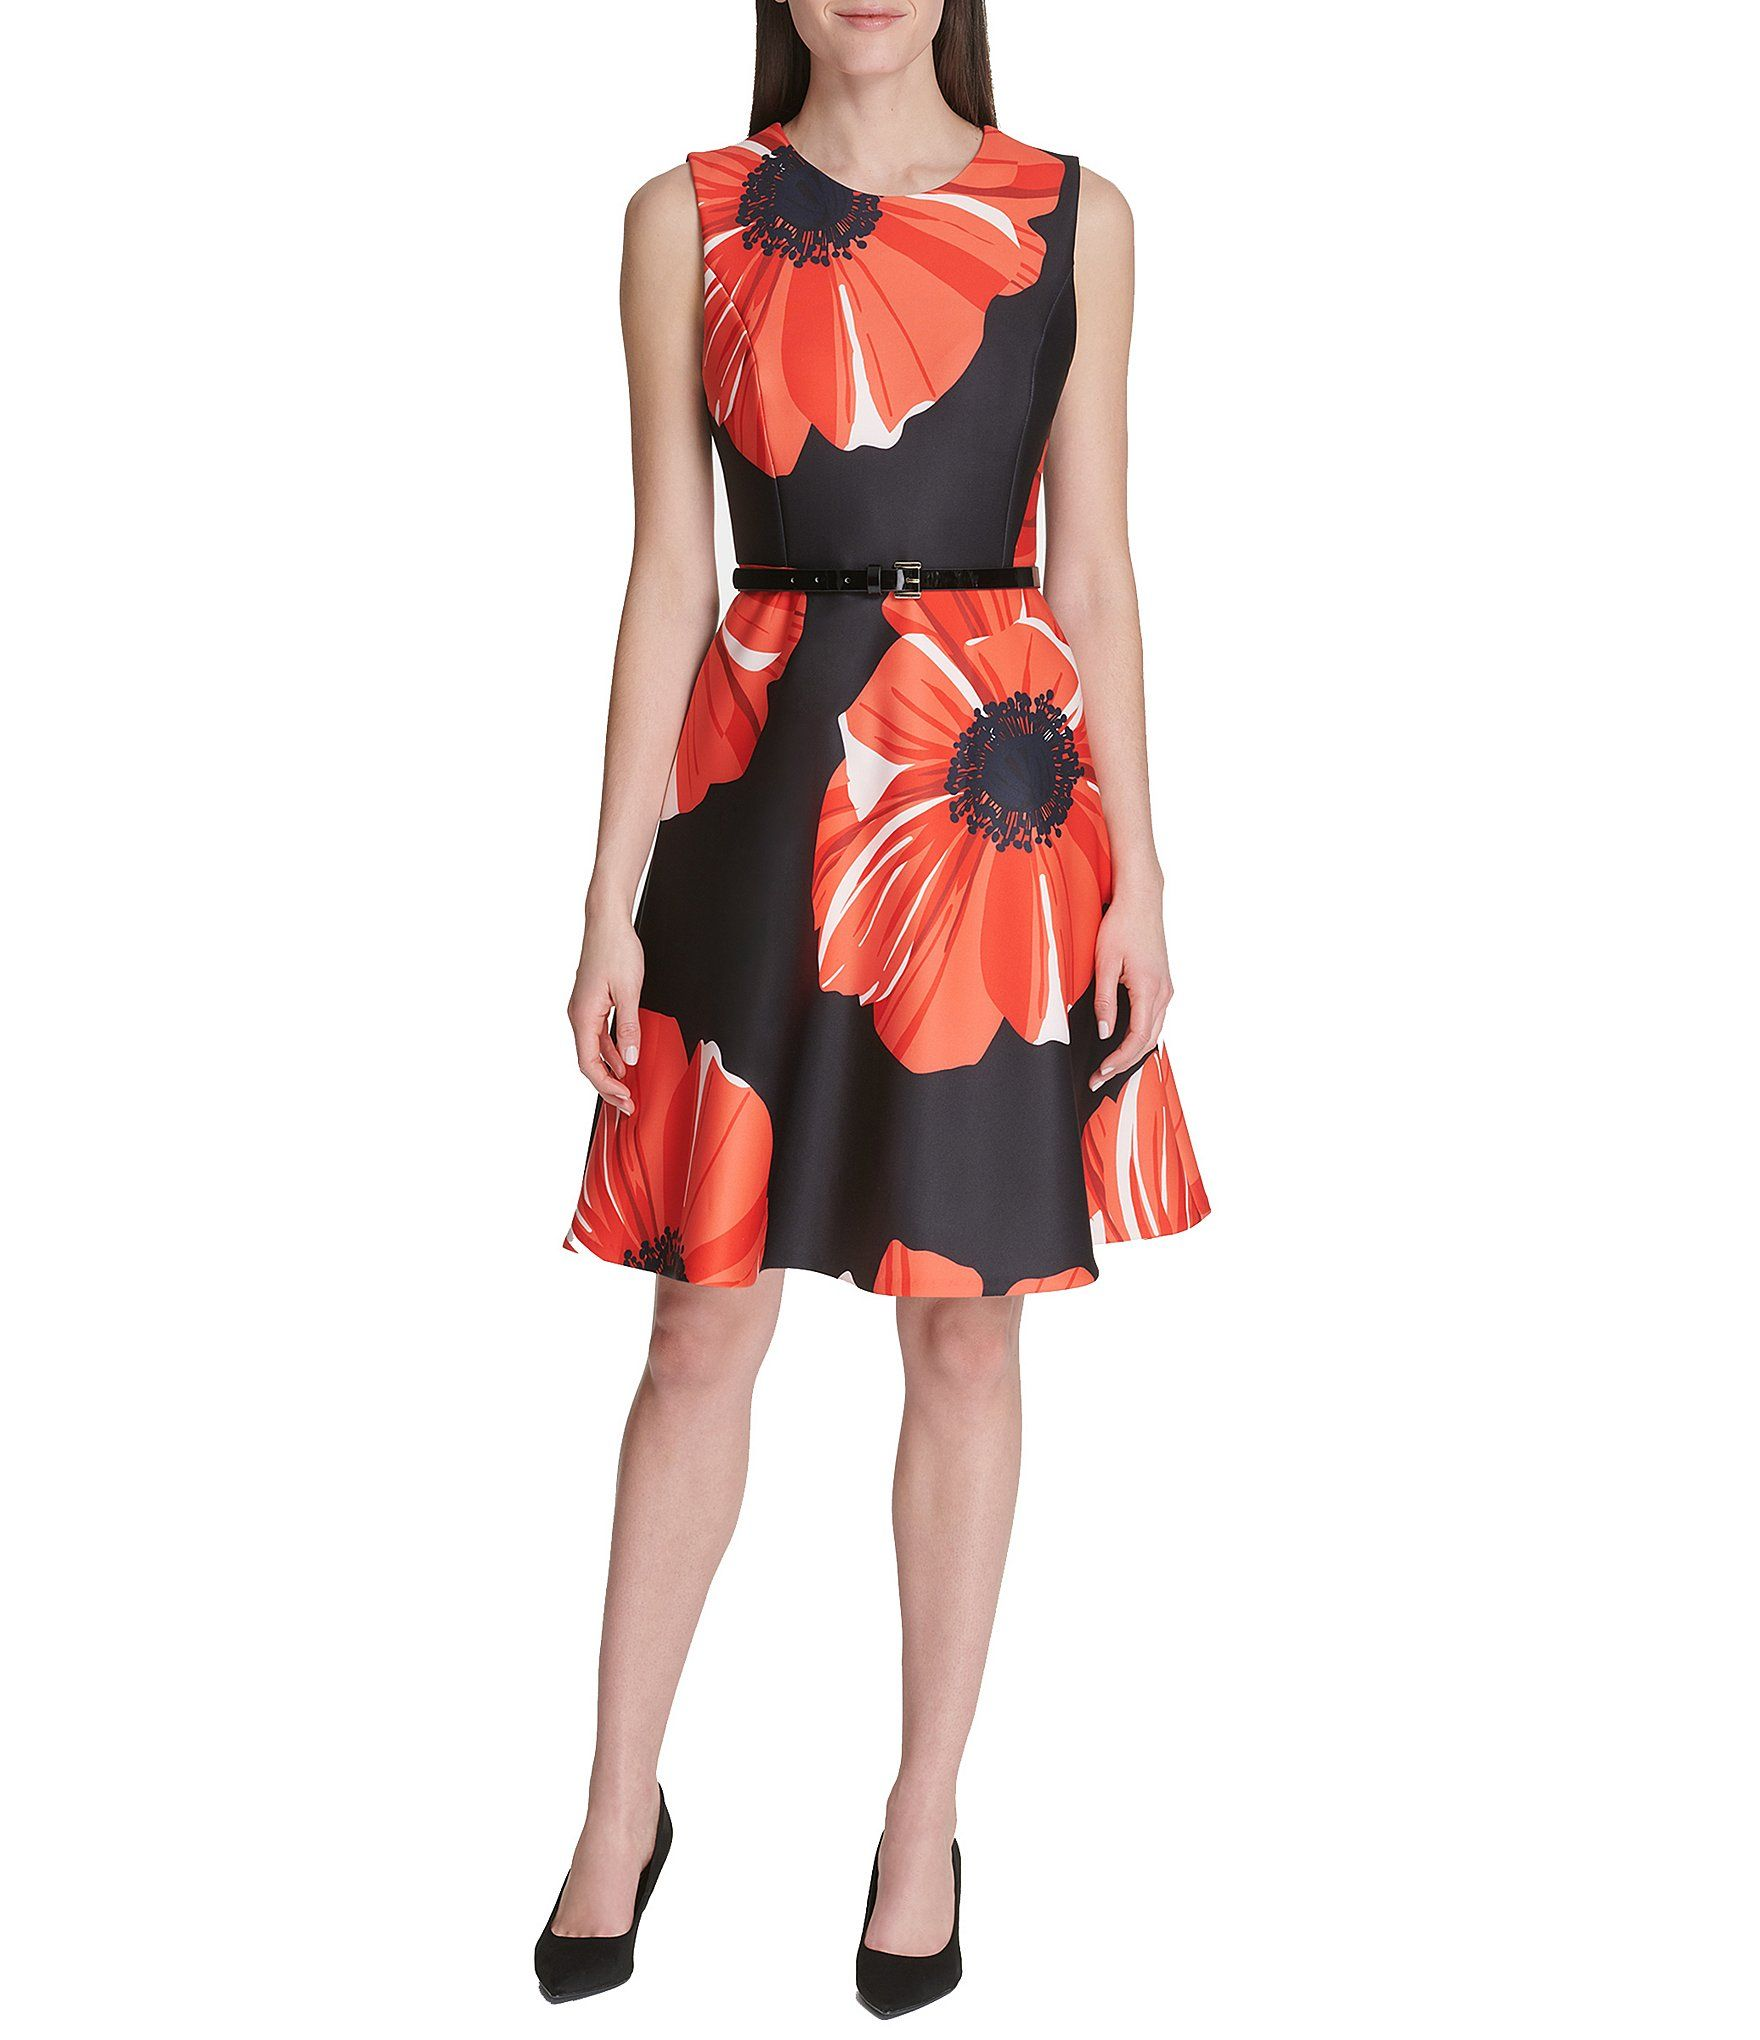 Tommy Hilfiger Poppy Floral Print Belted A-Line Dress – Black Cherry 4